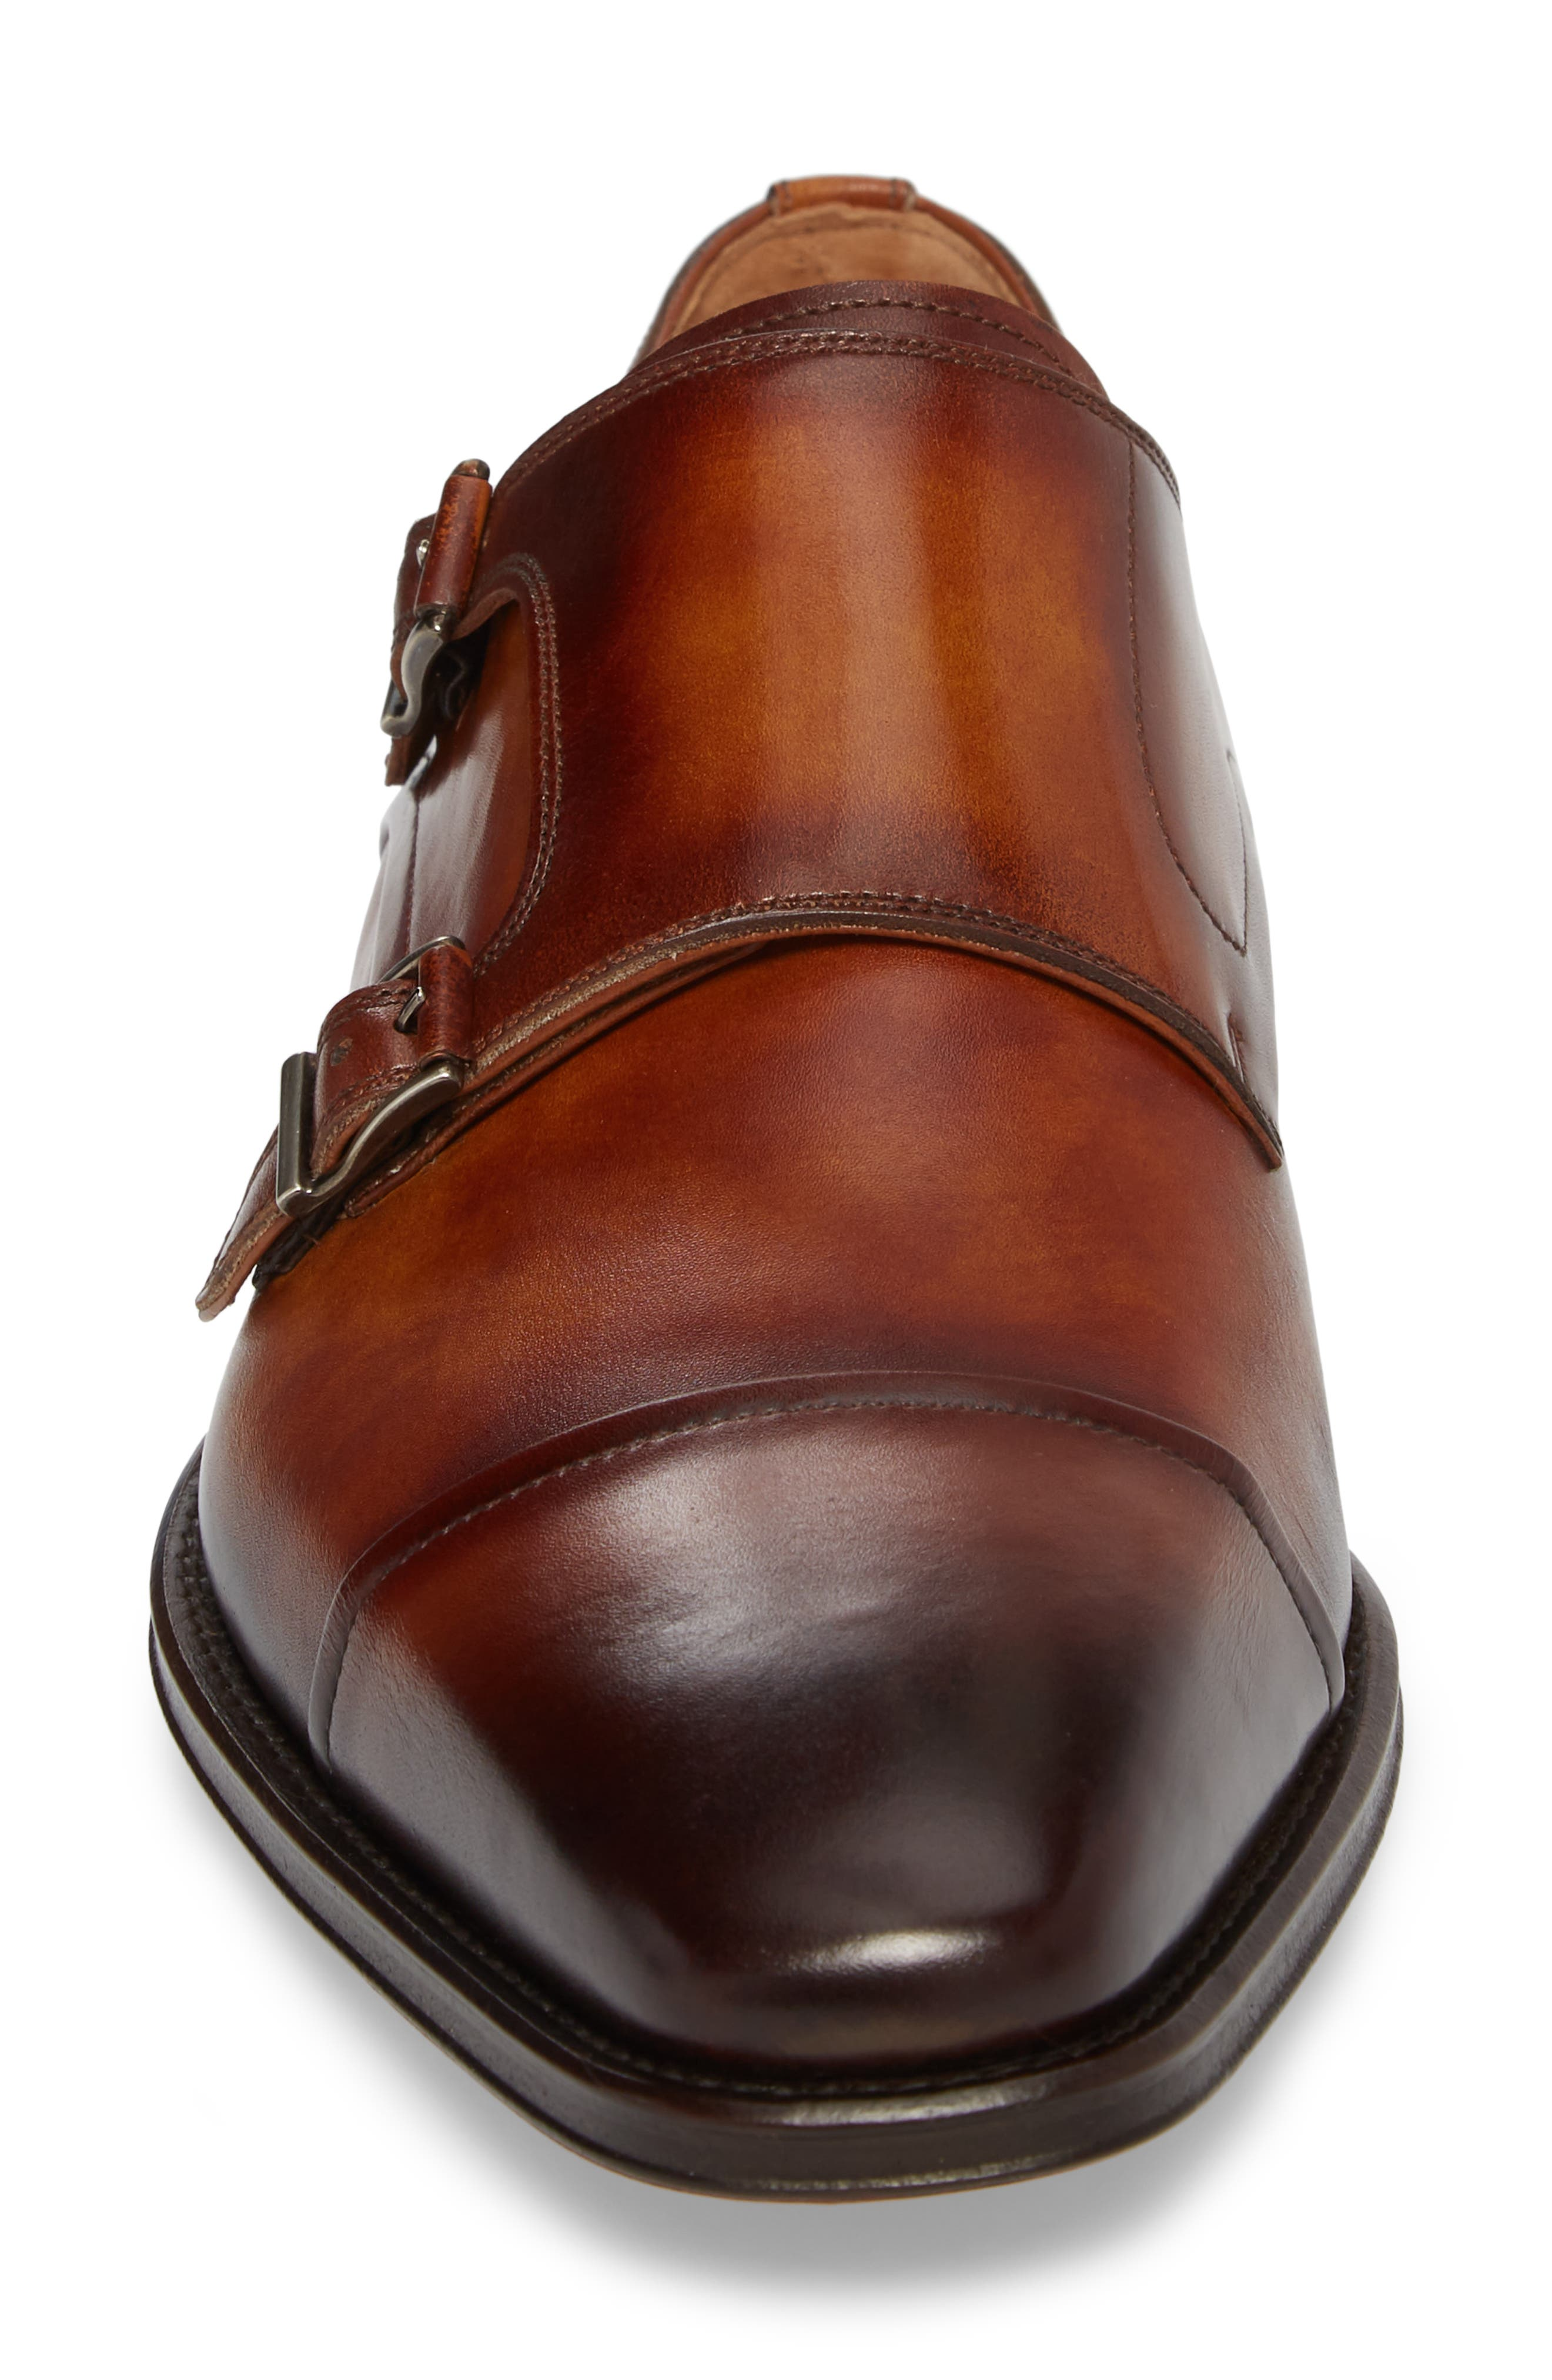 Silvio Double Monk Strap Shoe,                             Alternate thumbnail 4, color,                             230